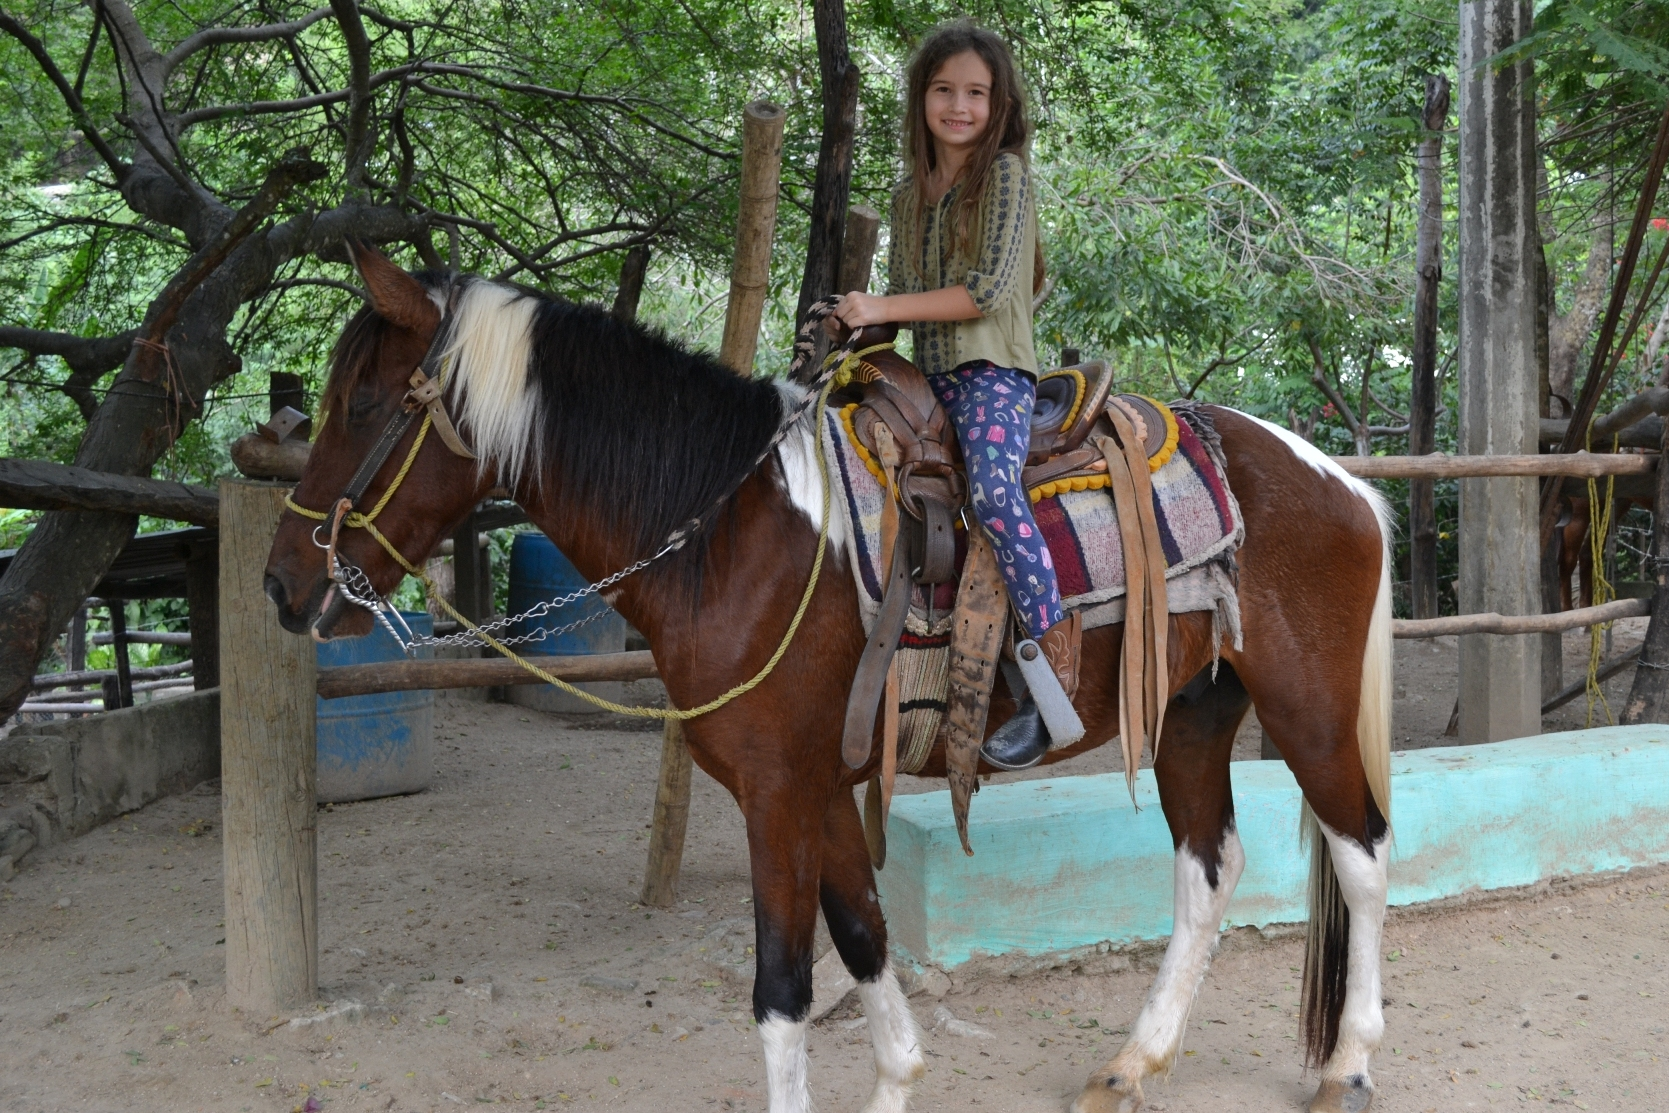 Oh yeah - horseback riding in Mexico!